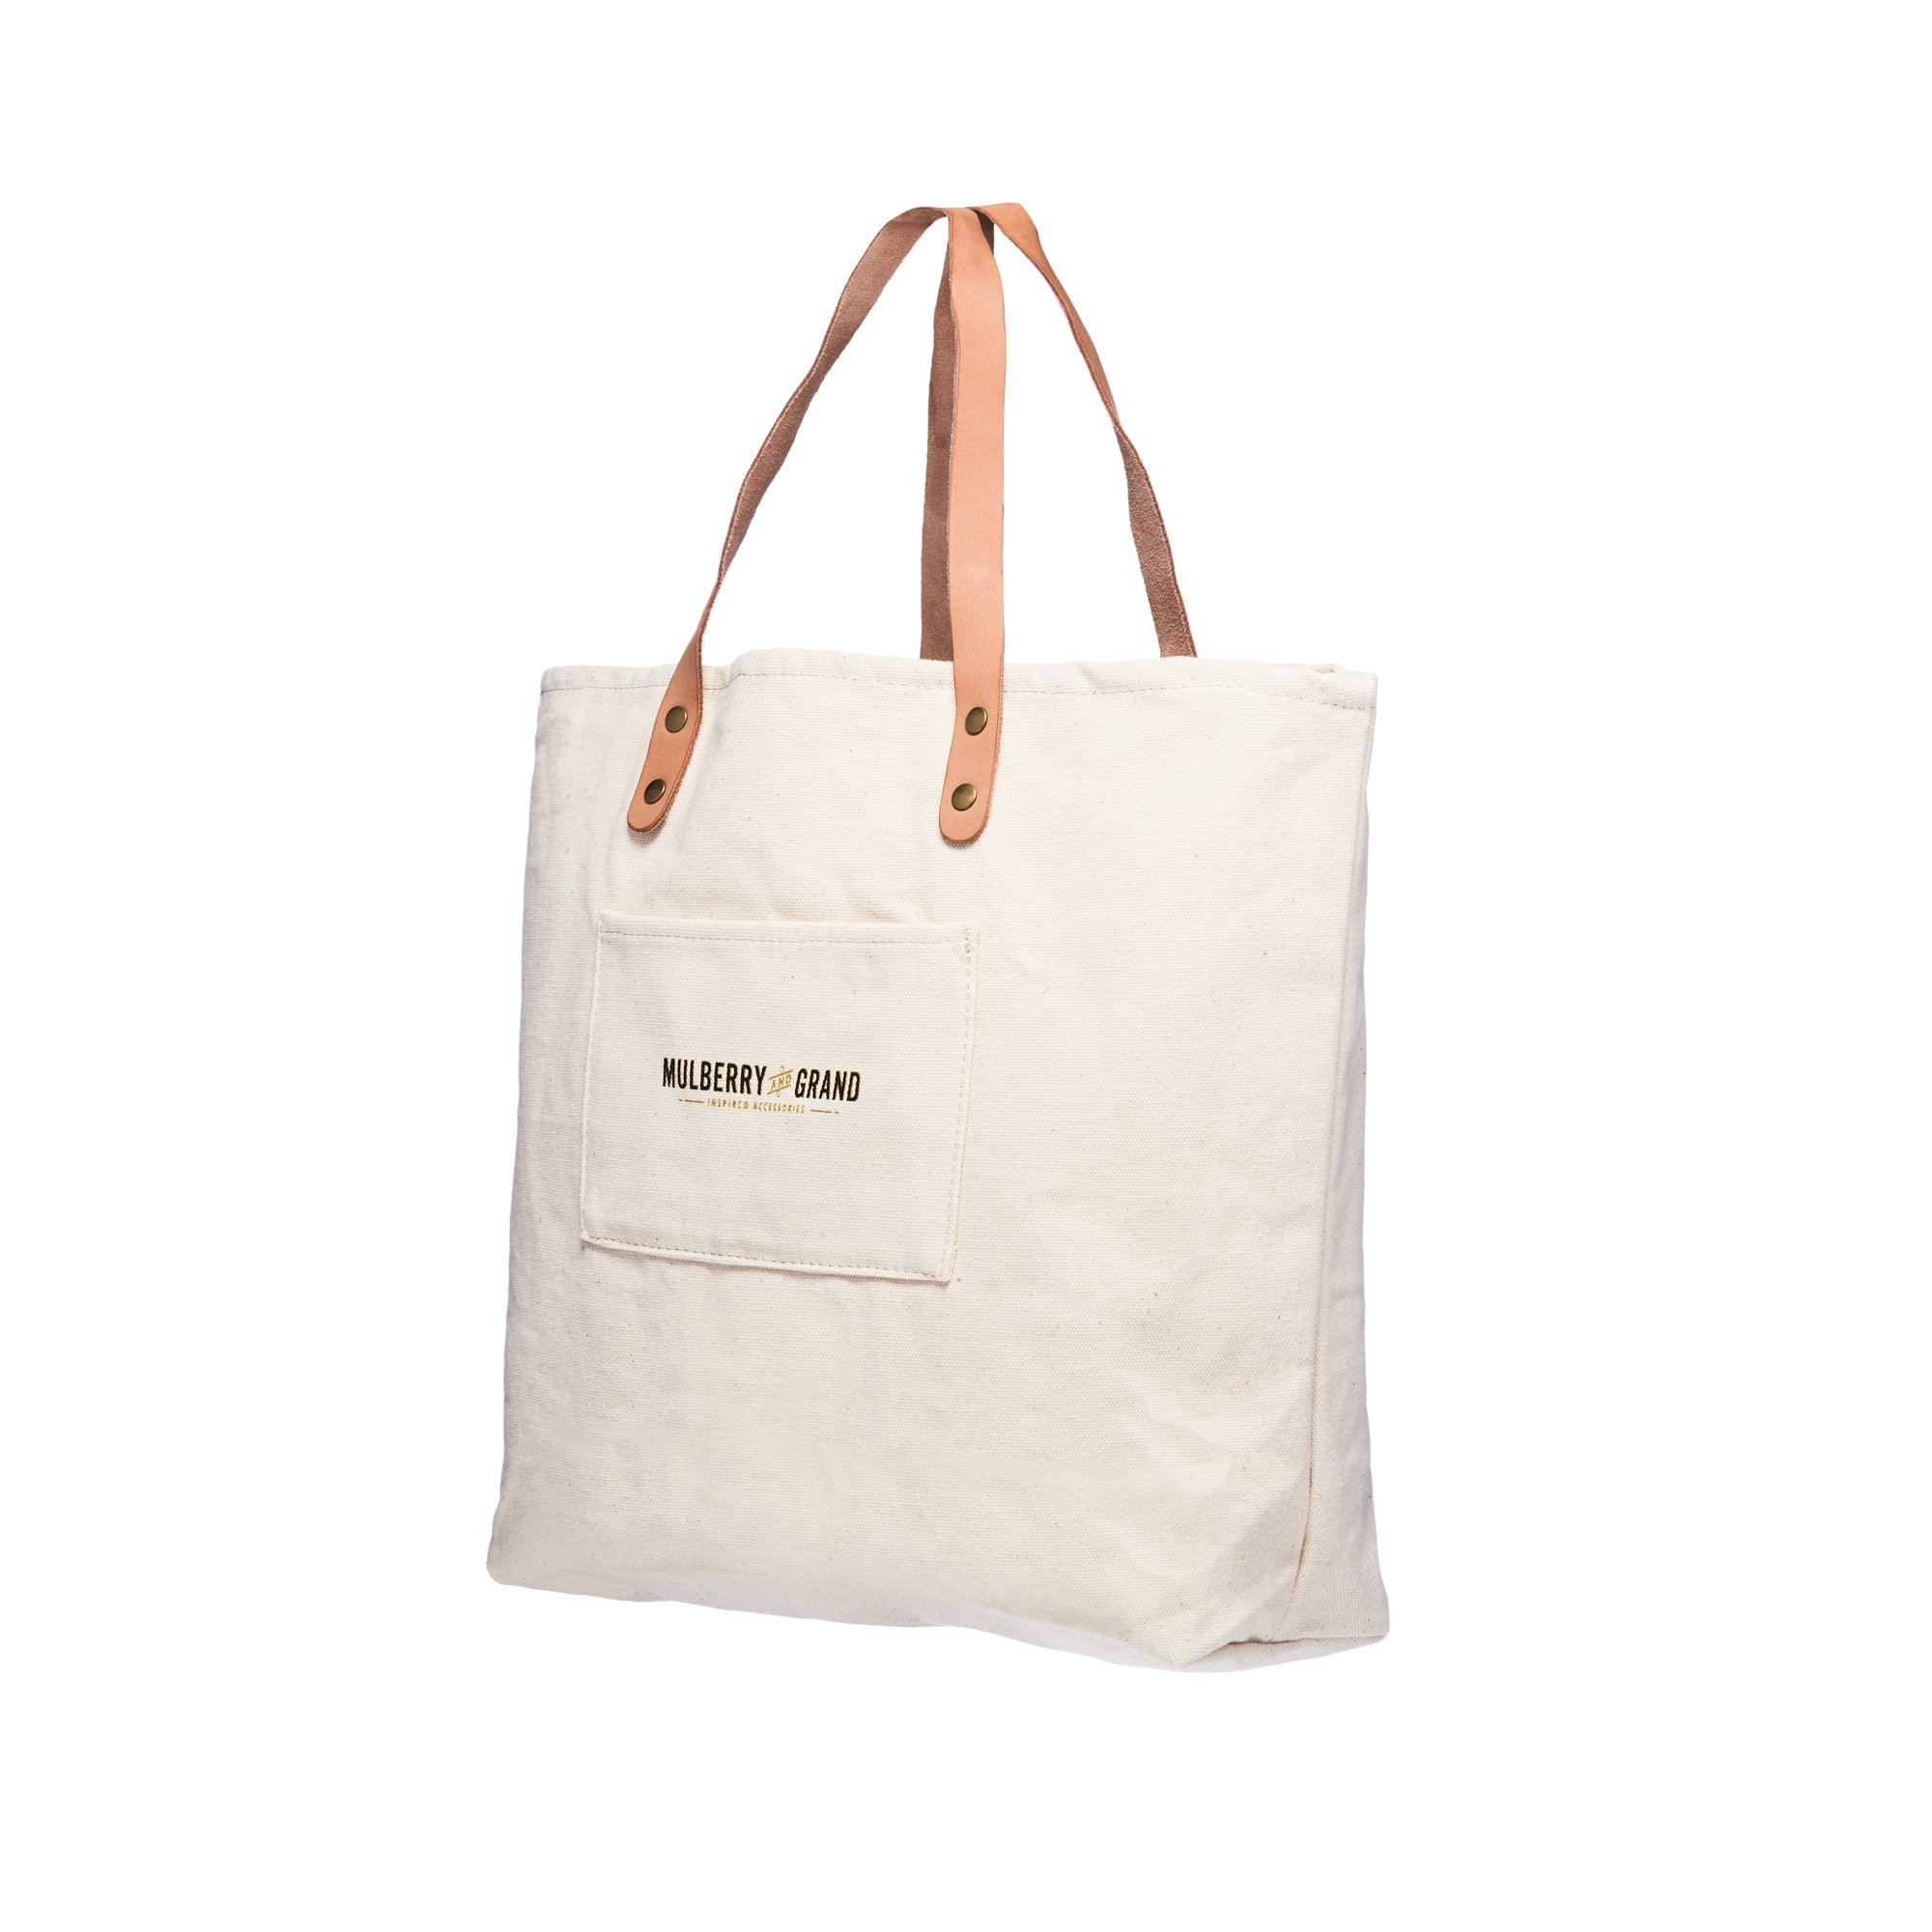 But First Champagne Canvas Tote Bag.